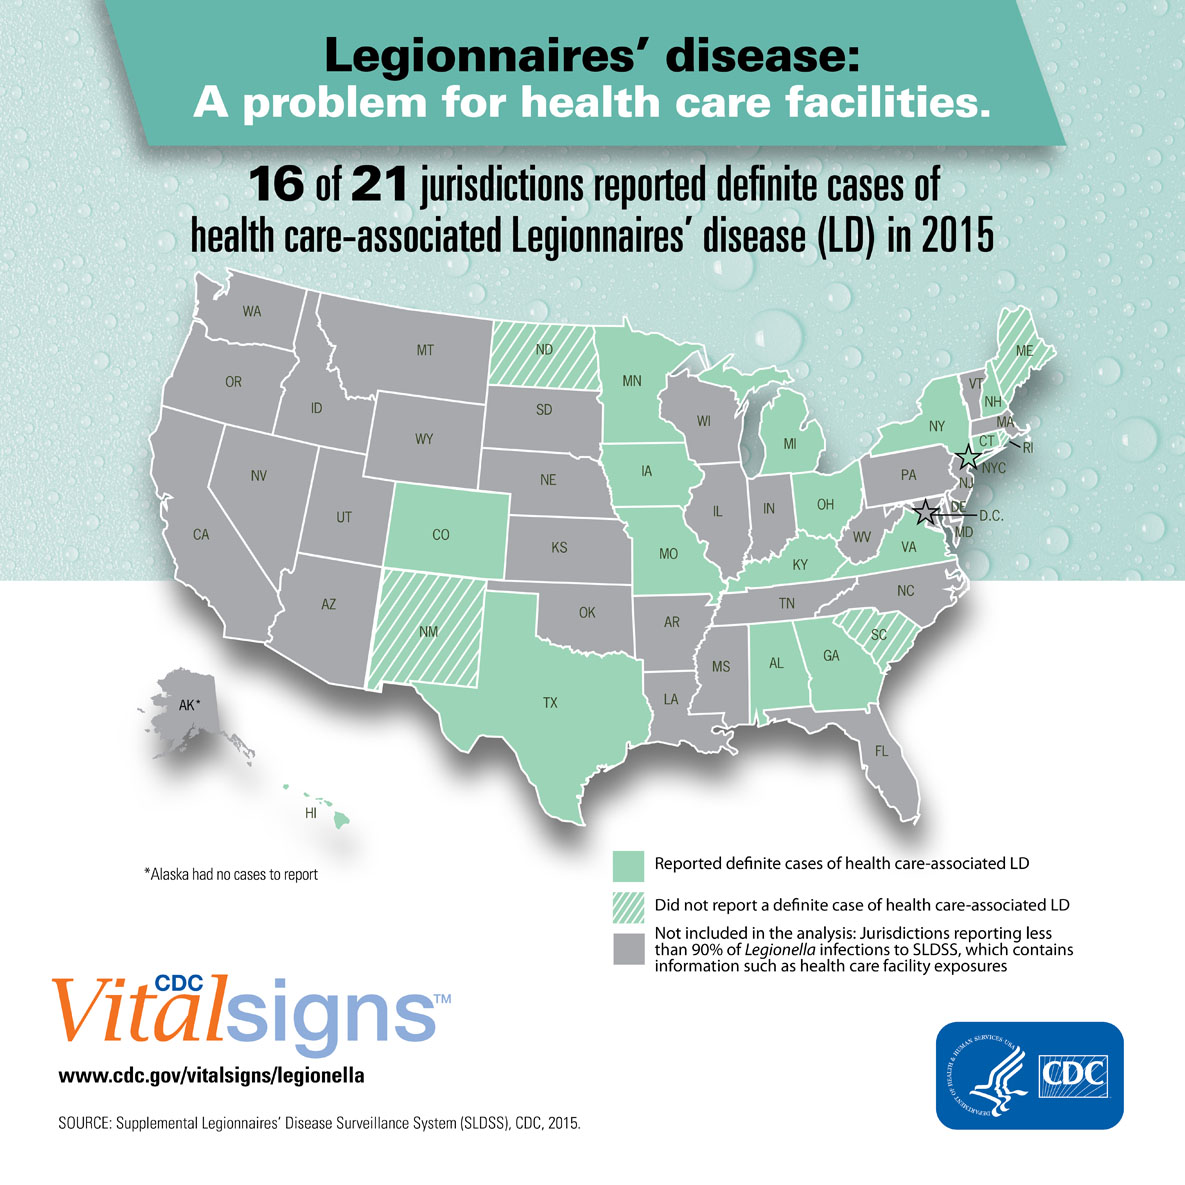 Legionnaires' disease: A problem for health care facilities.